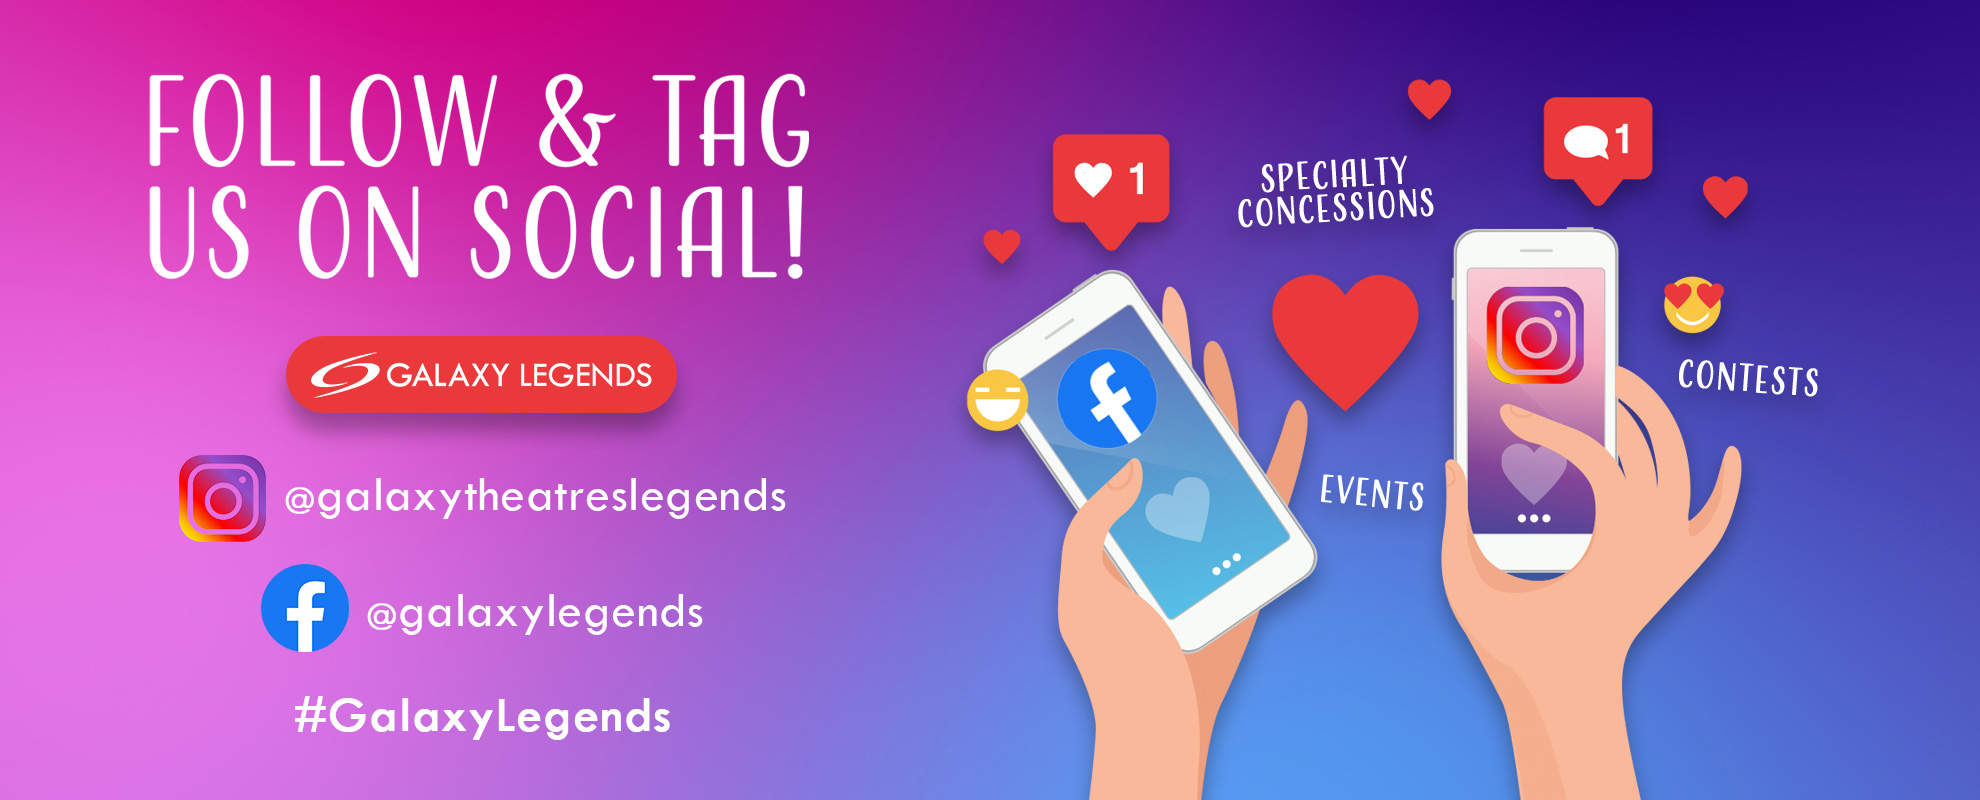 Socials/Hashtag - Legends image